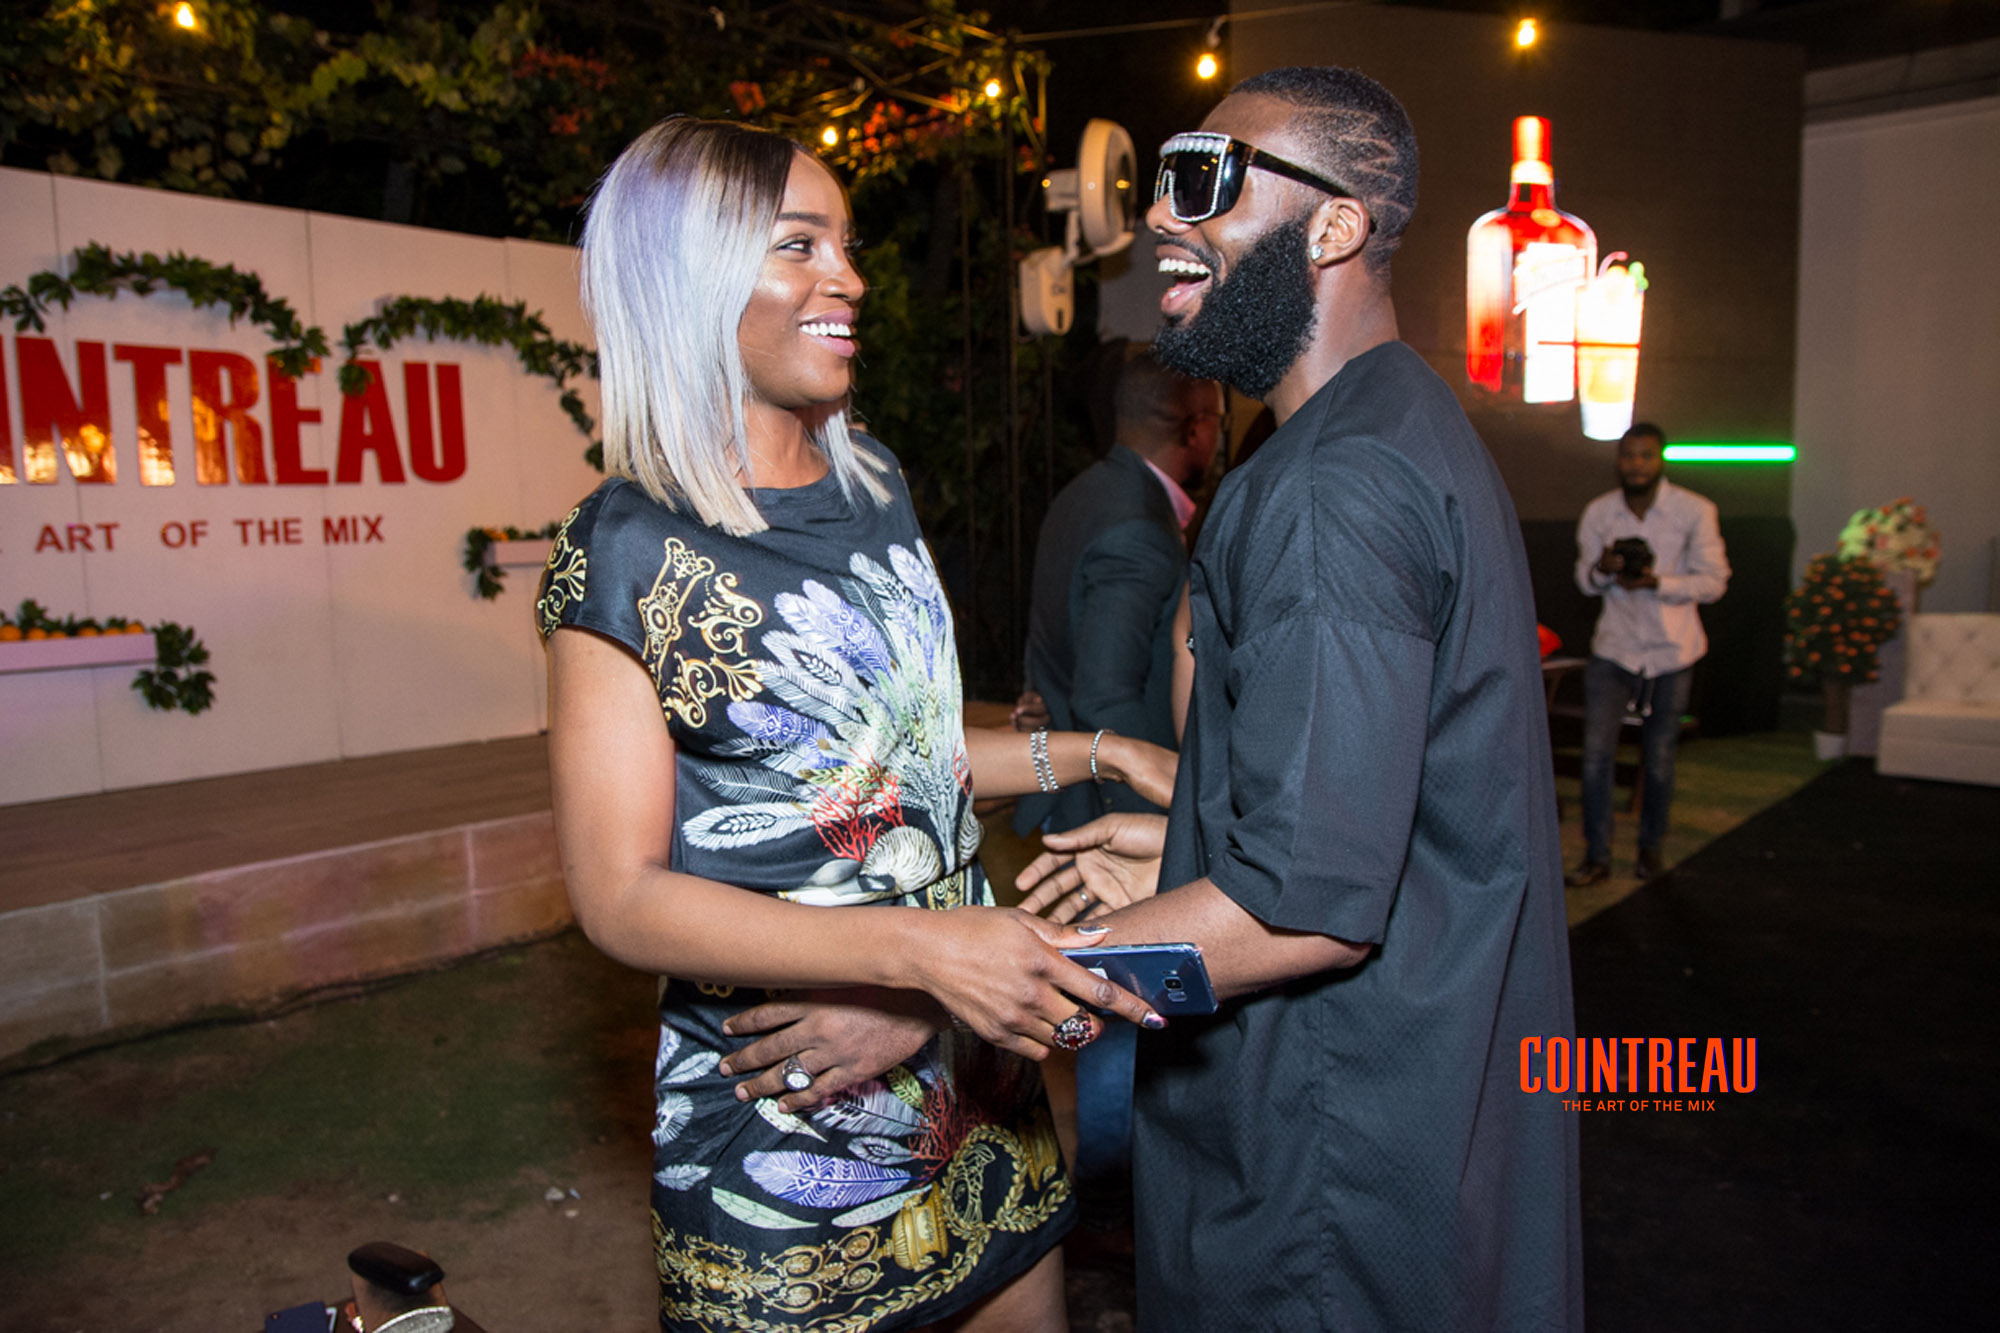 The Art of The Mix with Cointreau & Media Room Hub: Azuka Oguijuuba Celebrates Magazine's One Year Anniversary